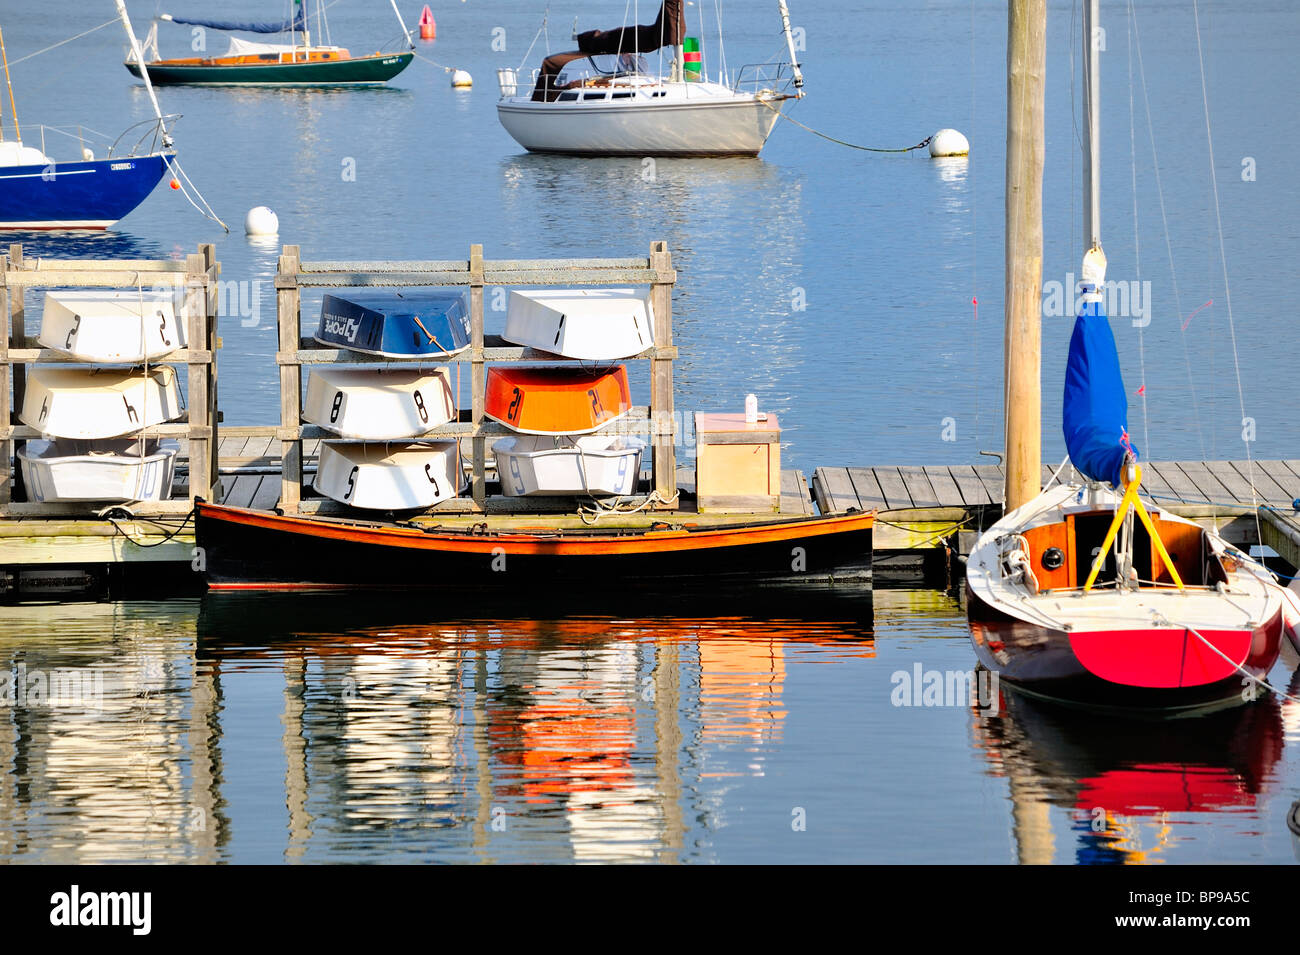 tranquil-scene-of-rockland-harbor-maine-with-colorful-boats-moored-BP9A5C.jpg